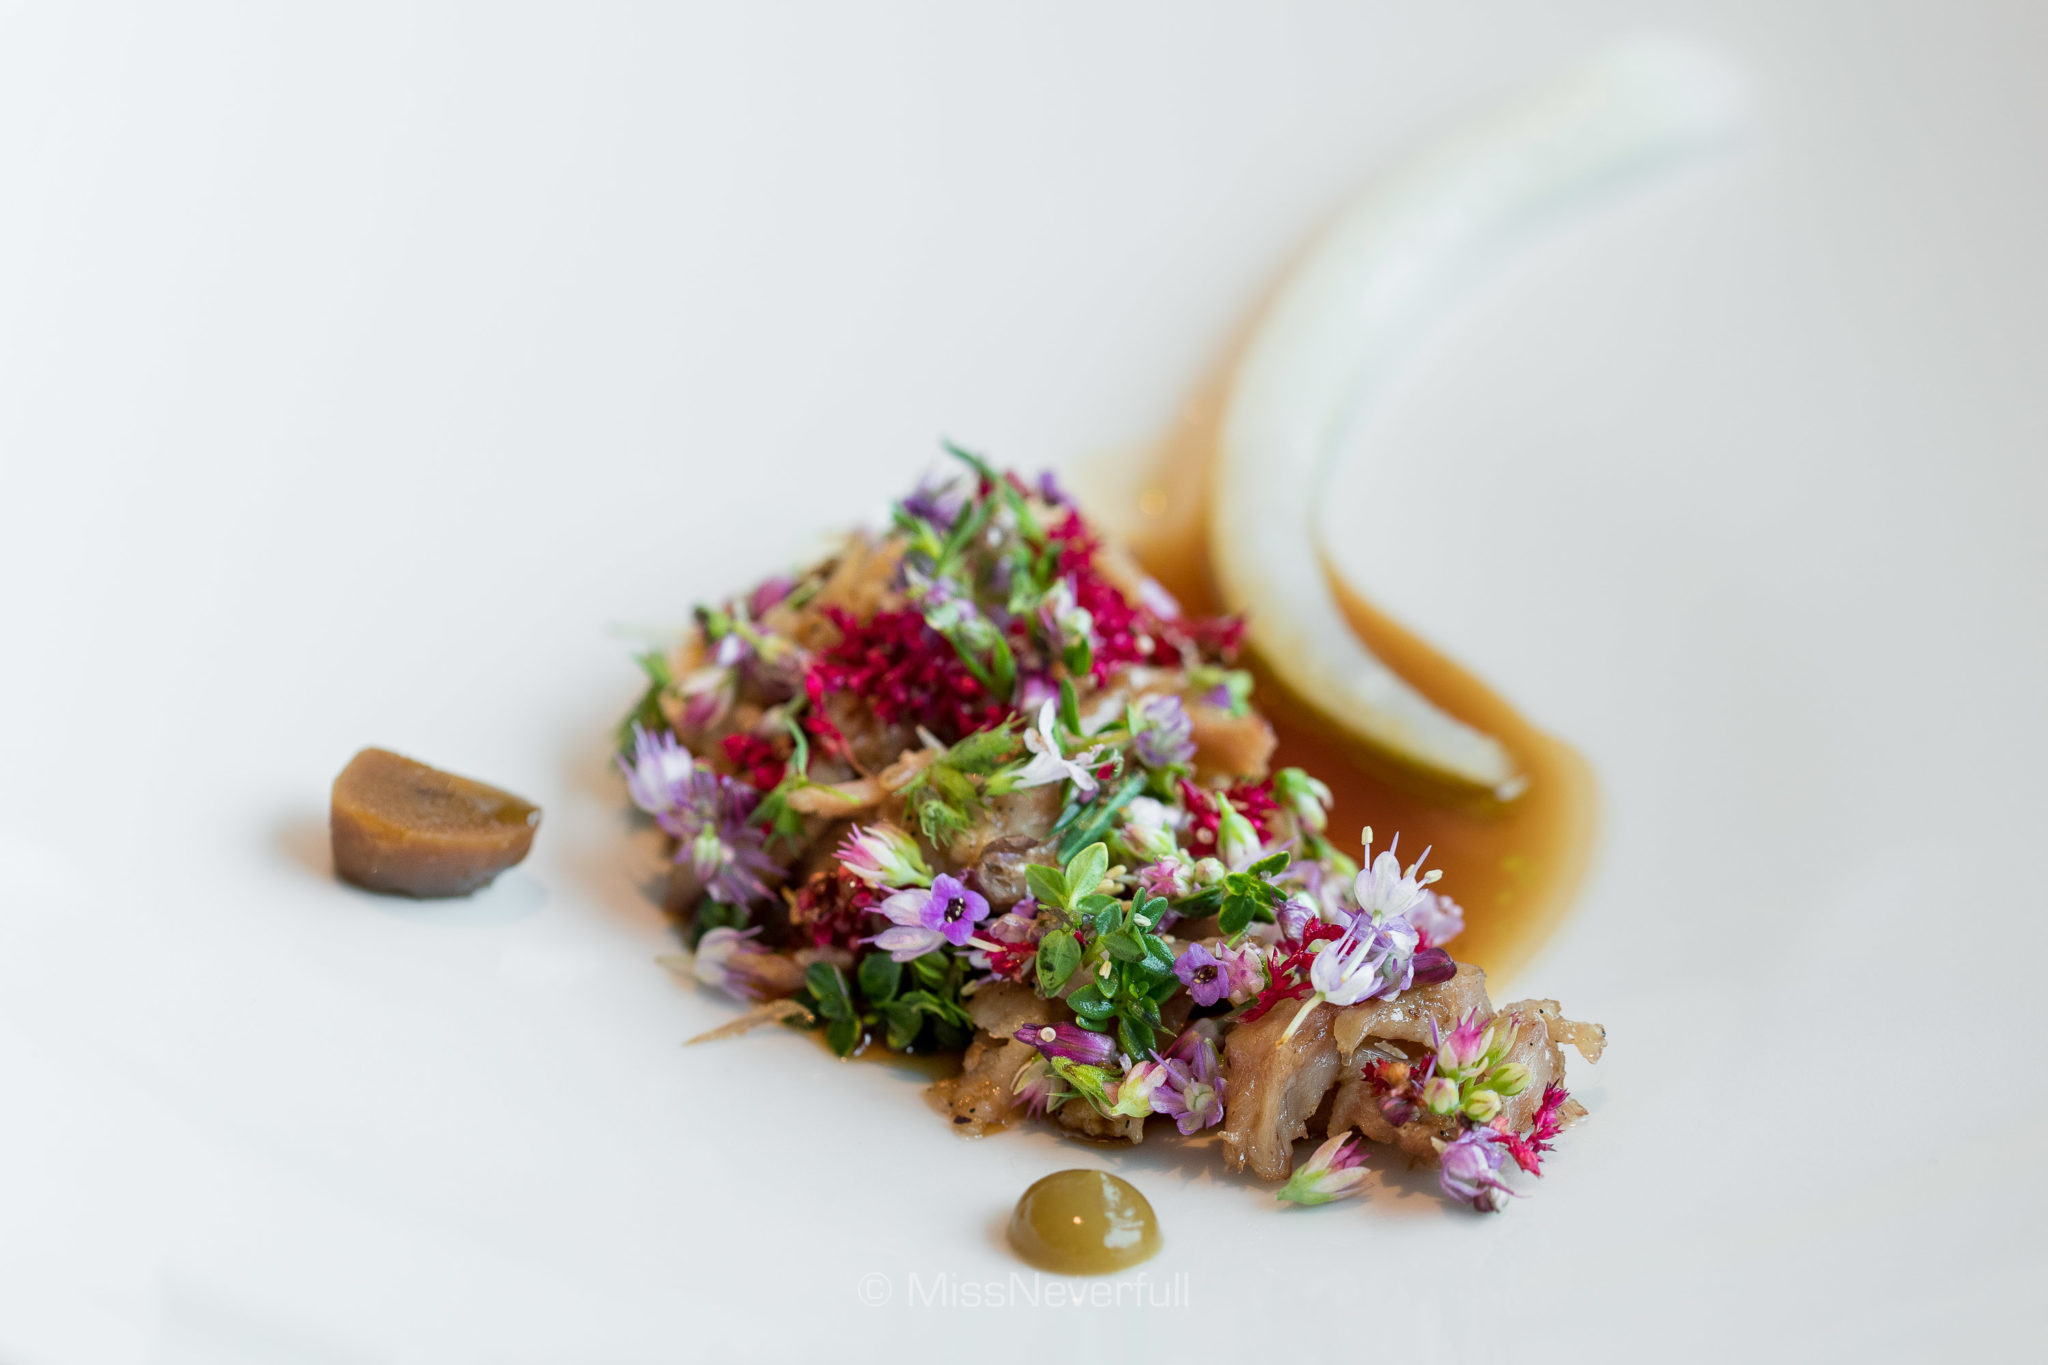 2.7 Grilled pork on the 'bone', black currant and pine